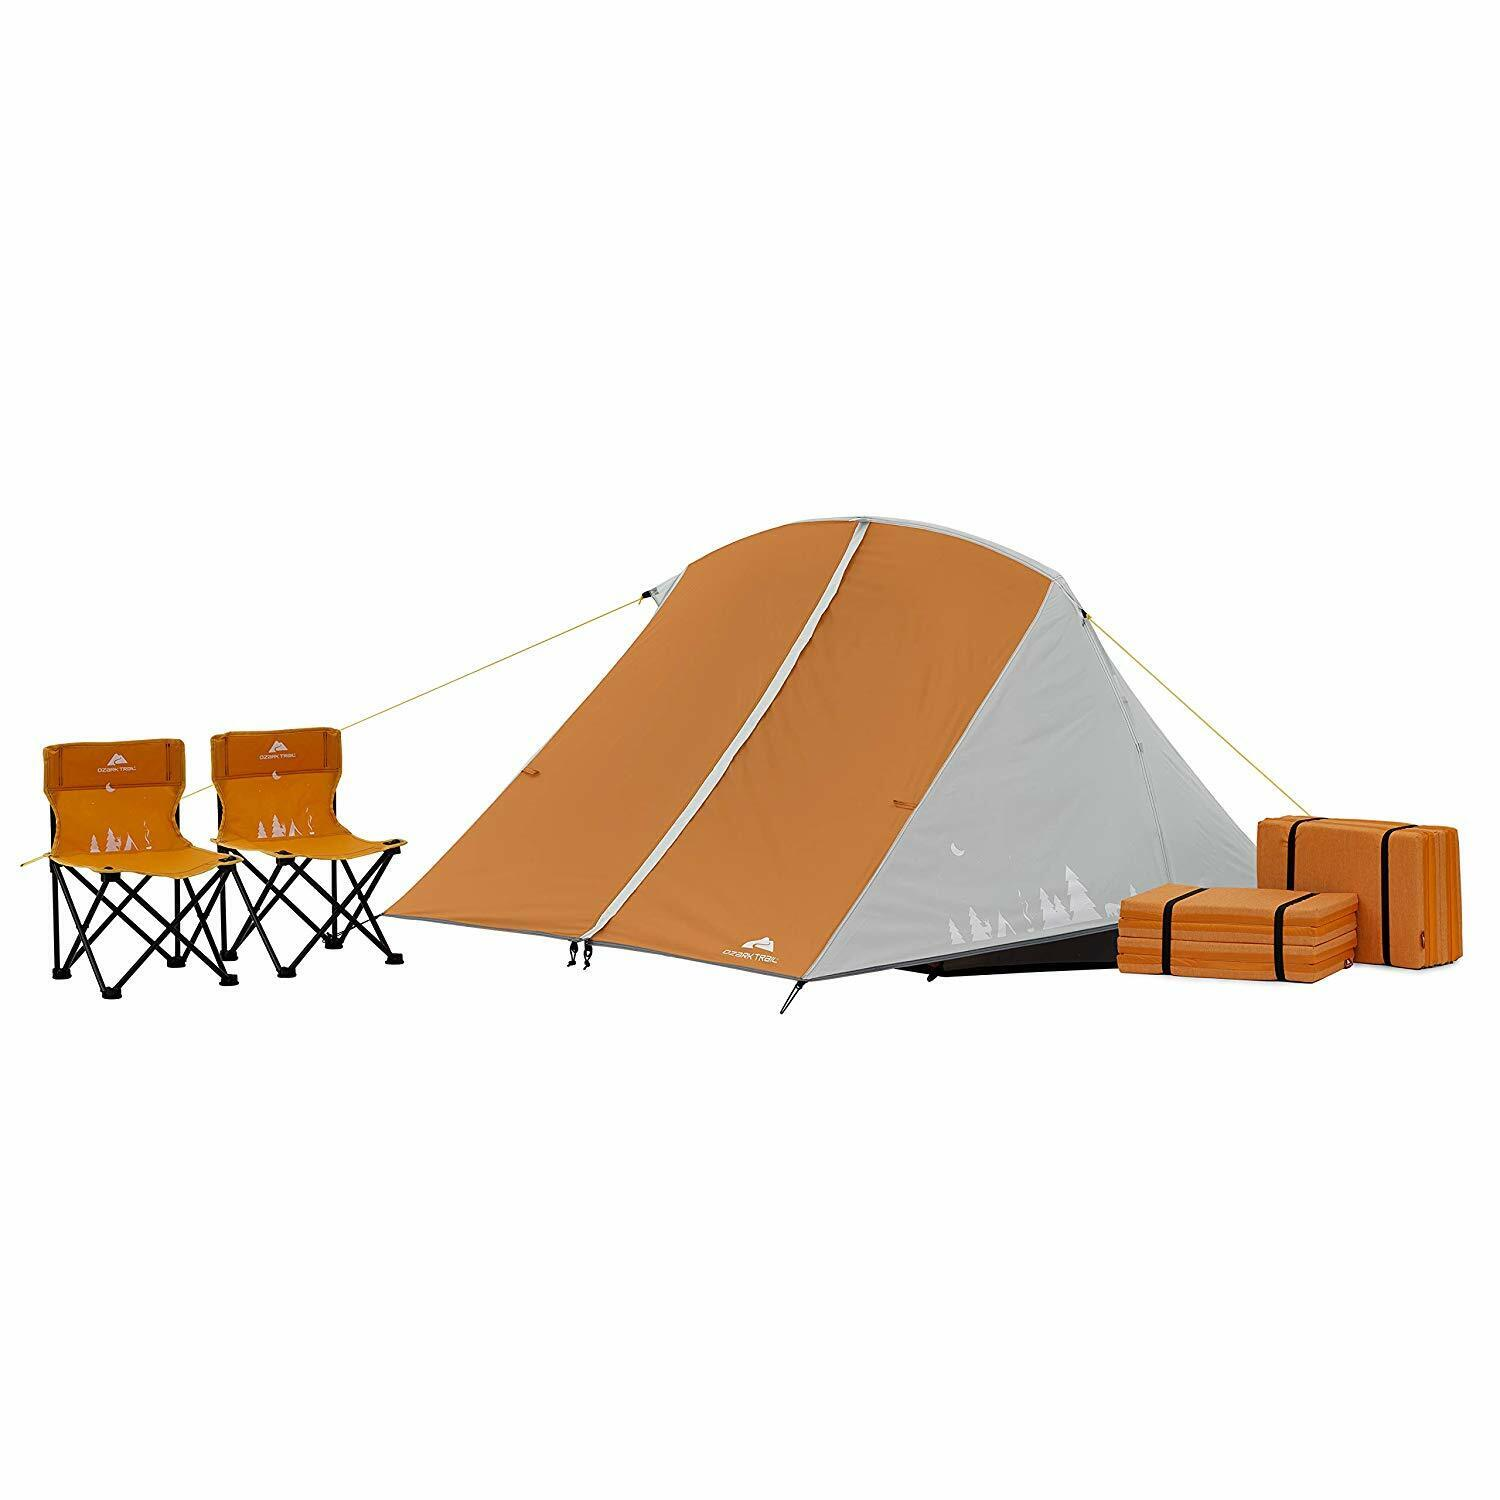 bambini campeggio Tent Bundle 3 Person Quad Chairs Nap Pads autory borsa Sleep Over Camp